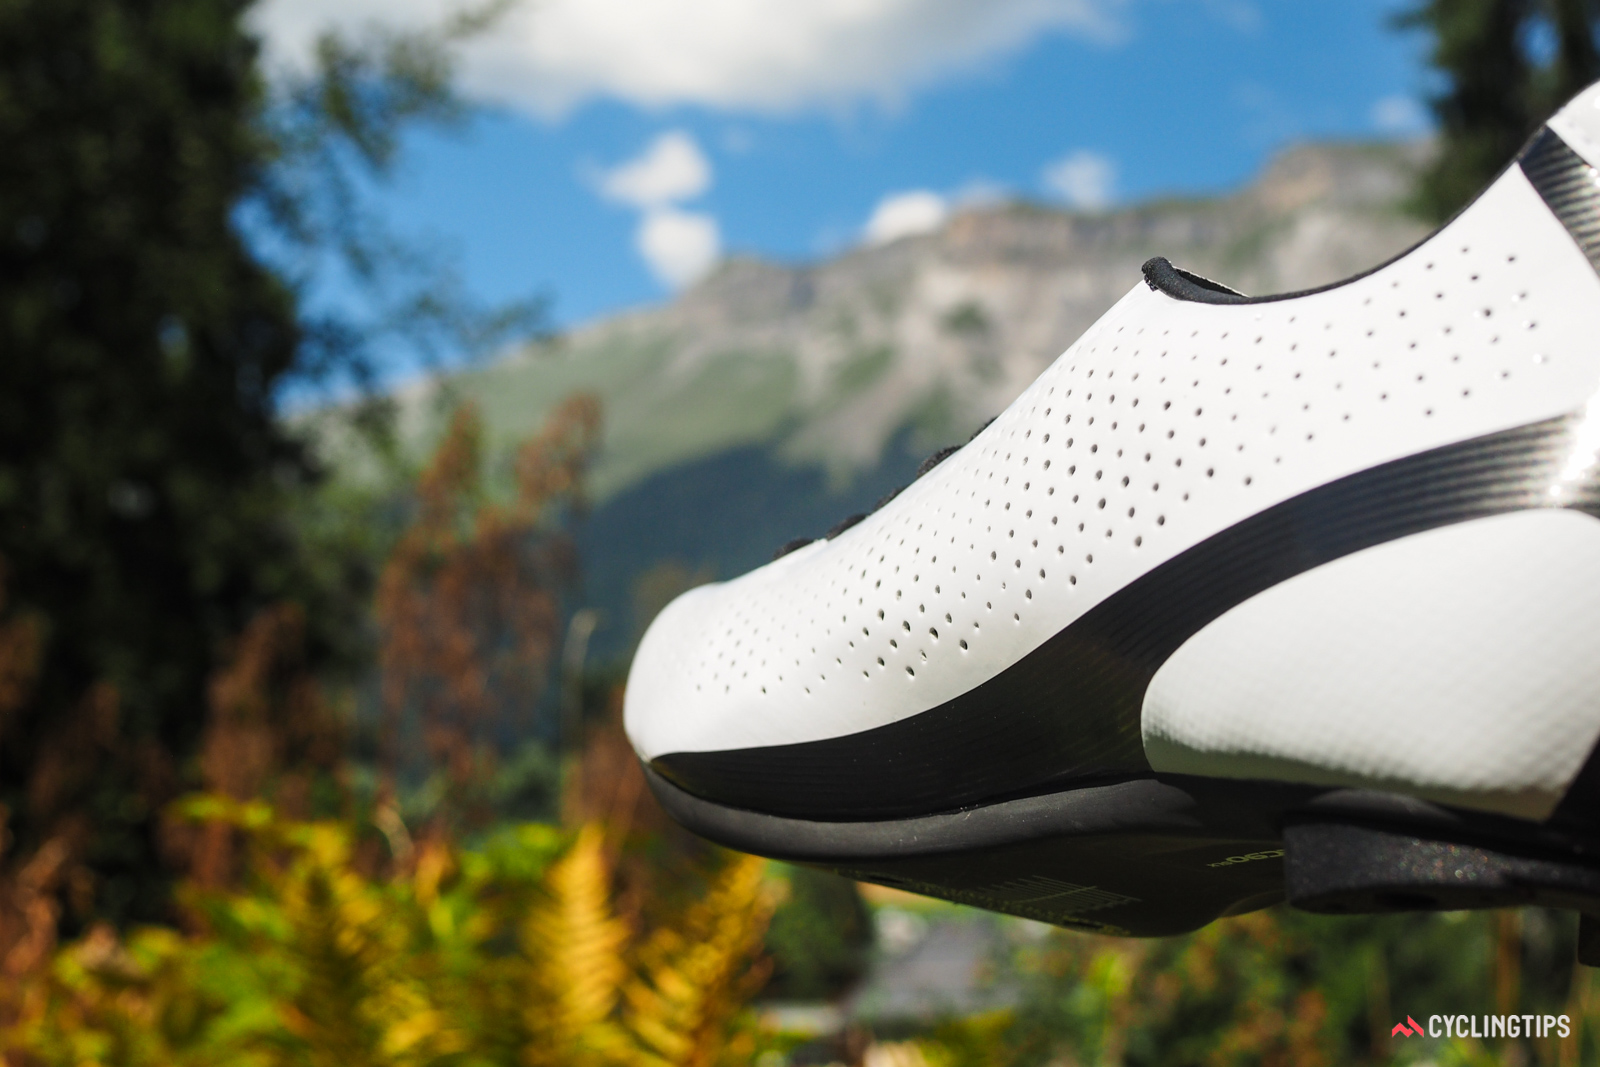 """As is typical with Giro shoes, arch support is built into the insole, not the carbon plate itself. The intentionally flat plate shape supposedly allows for more of a """"spillover"""" effect to accommodate a wider range of foot shapes and sizes. However, the Evofiber SL synthetic upper material is extremely resistant to stretch, so any riders with foot anomalies should definitely try these on first before buying."""